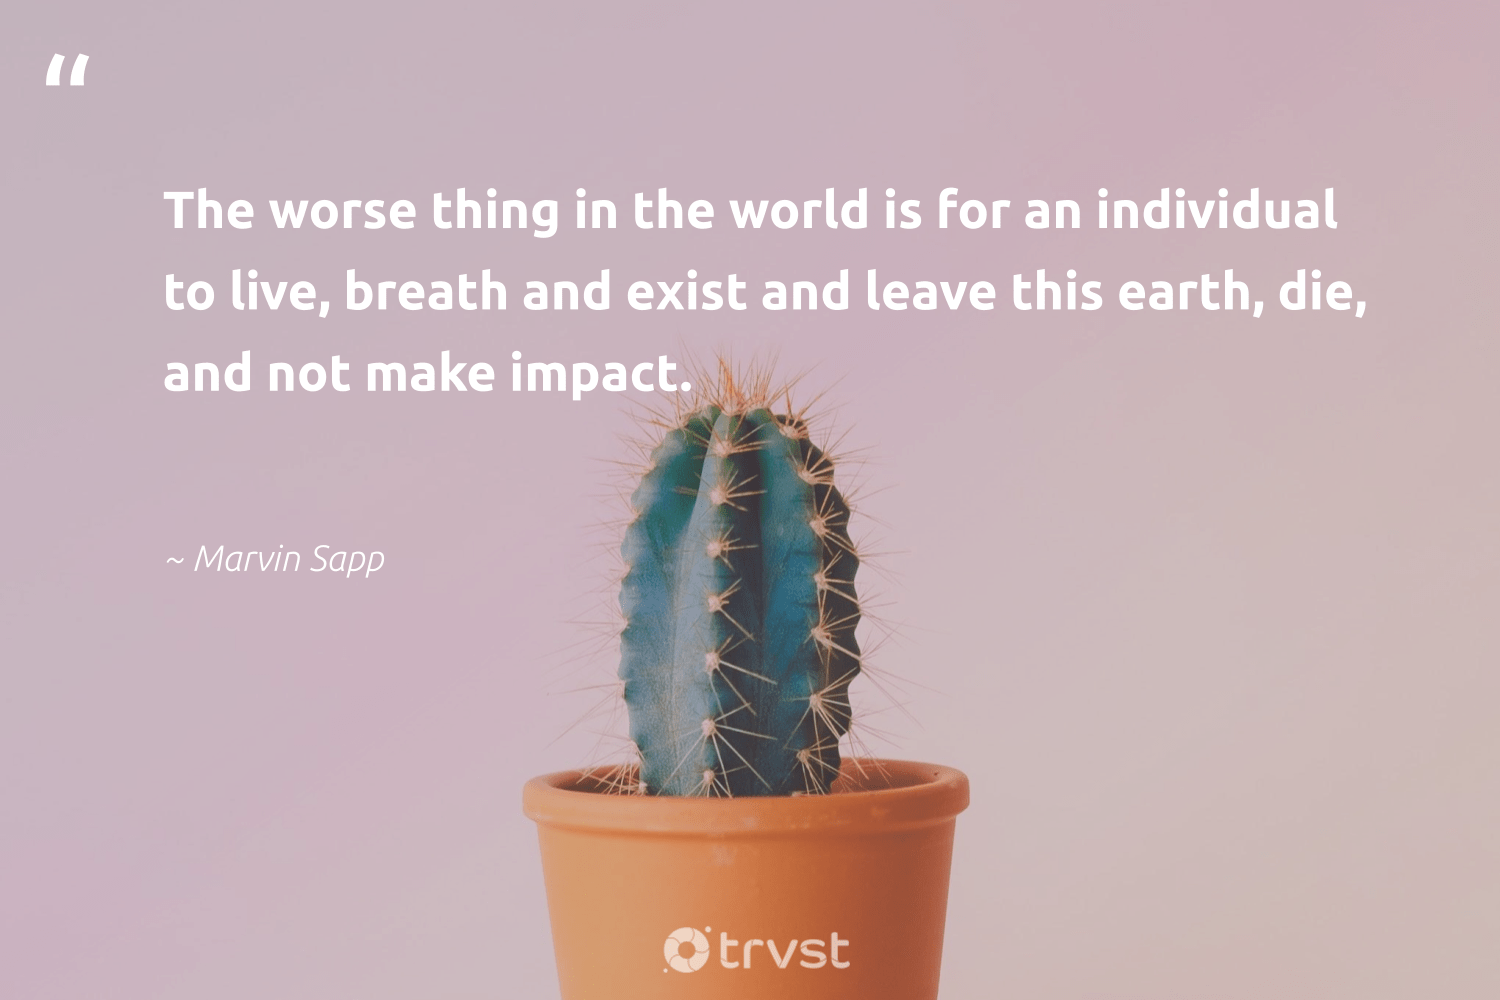 """The worse thing in the world is for an individual to live, breath and exist and leave this earth, die, and not make impact.""  - Marvin Sapp #trvst #quotes #impact #earth #environment #giveback #eco #planetearthfirst #conservation #betterplanet #wildernessnation #takeaction"